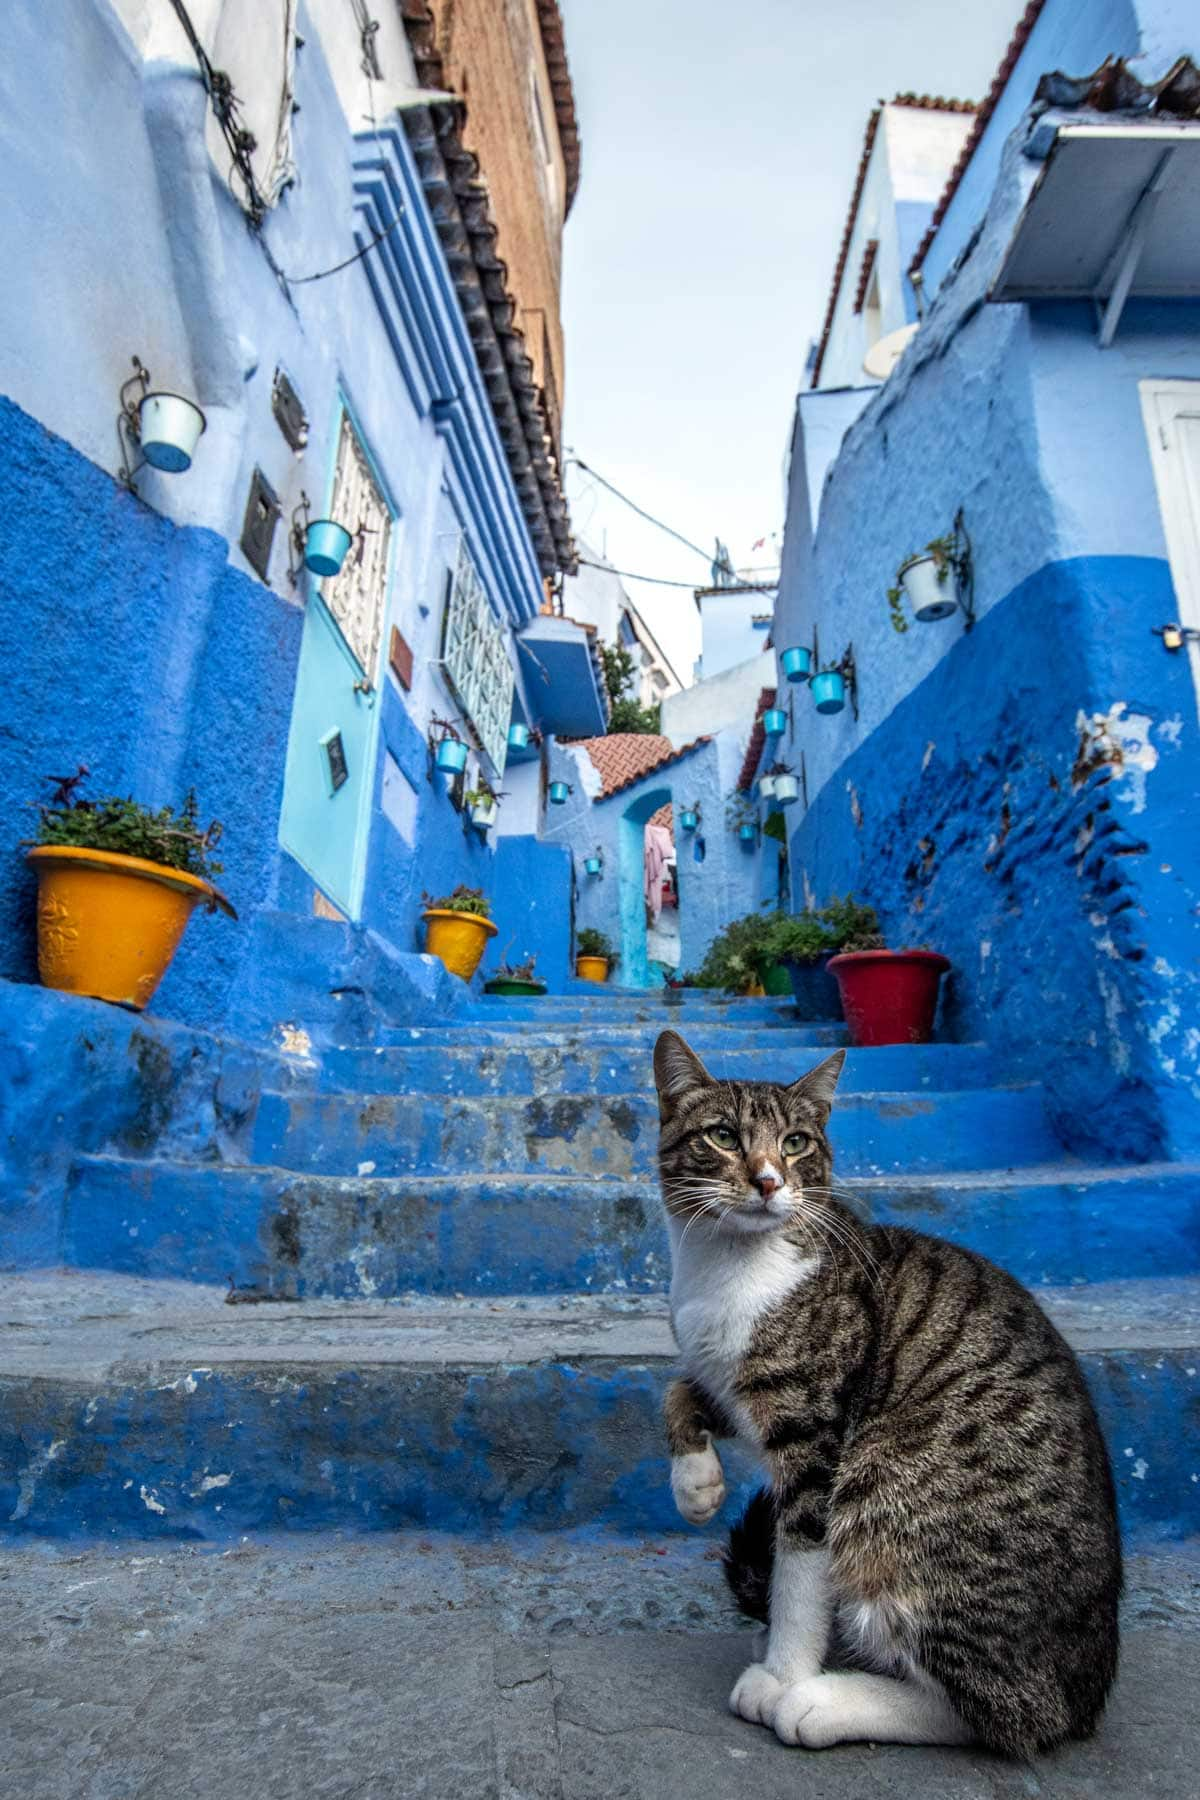 chefchaouen photo guide - cat model